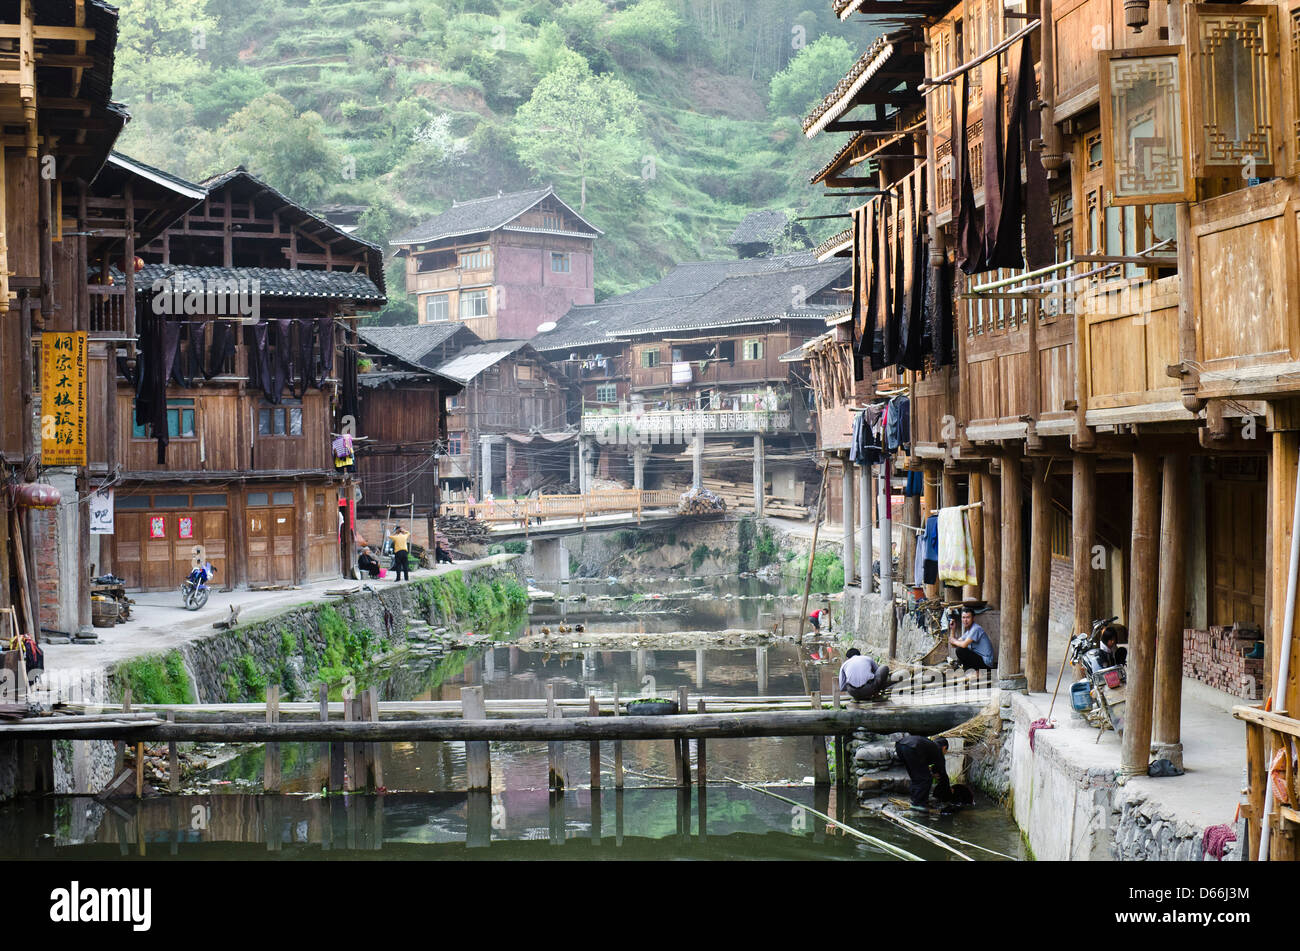 Zhaoxing village and river in the Guizhou province of China Stock Photo